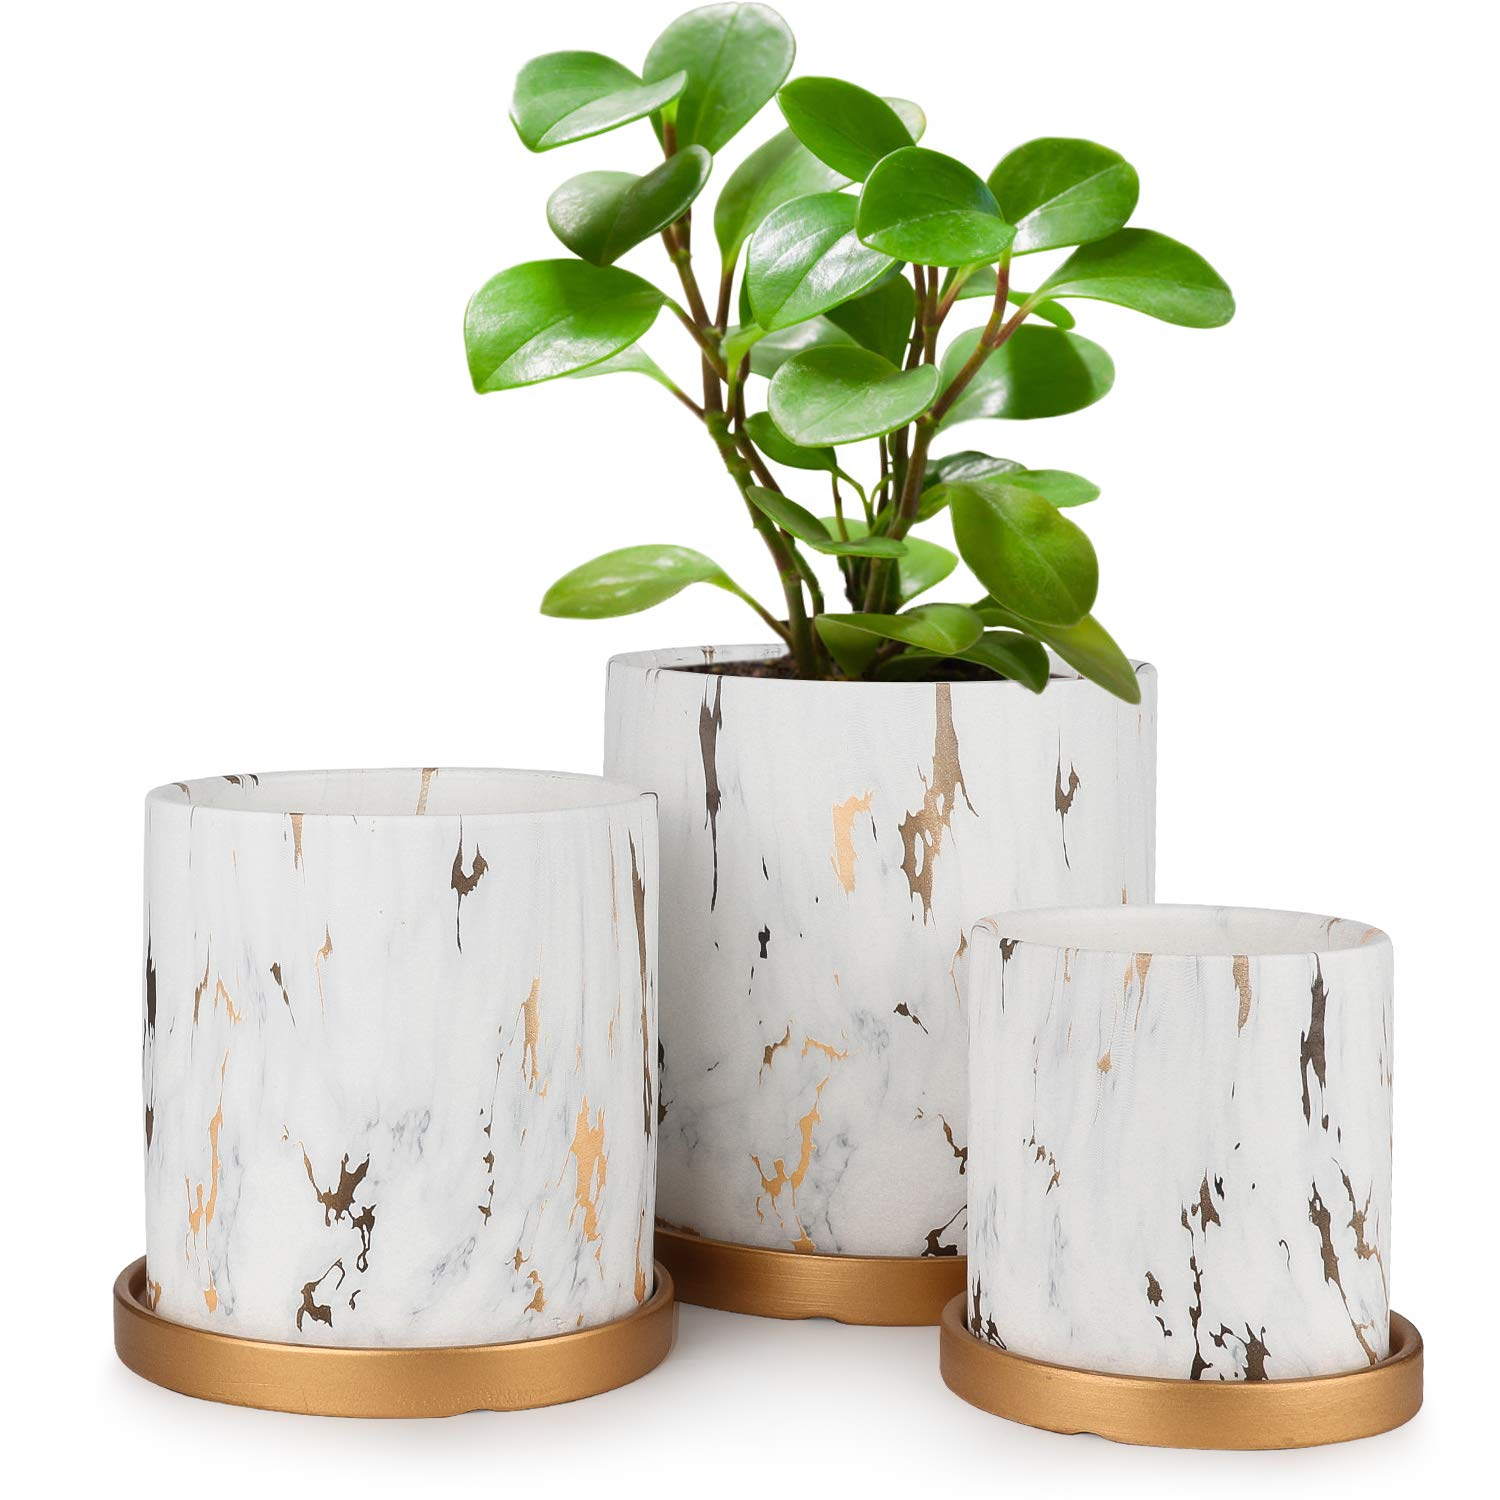 White Ceramic Flower Pot 6.9/5.5/4.3 Inch Garden Planters Set of 3, Indoor Outdoor with Drainage Hole and Plant Containers Tray with Gold and Marble Texture Detailing by HOMENOTE